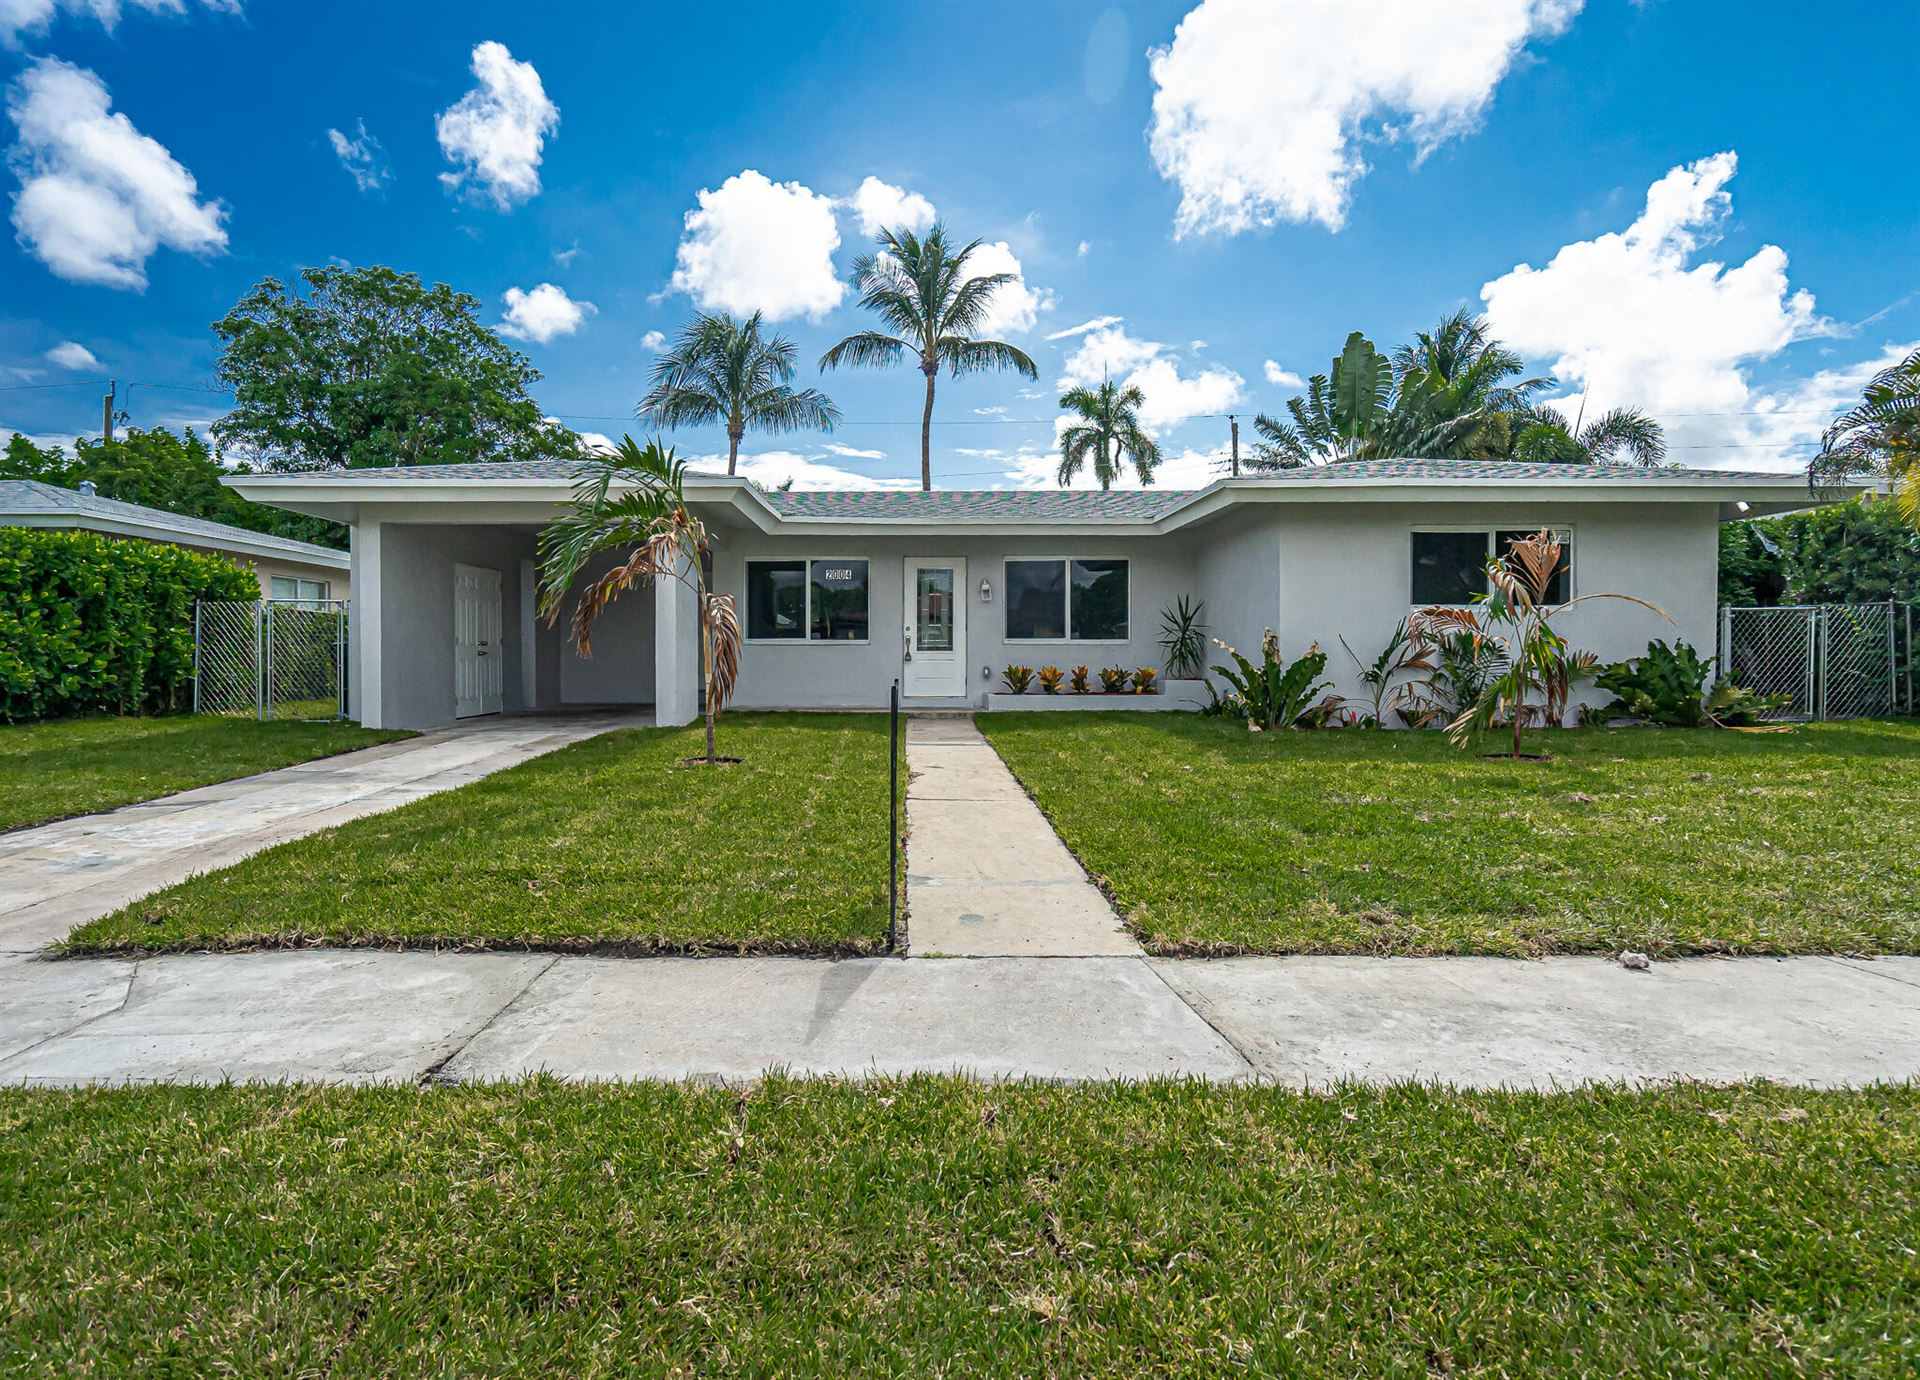 2004 NW 13th Avenue, Fort Lauderdale, FL 33311 - MLS#: RX-10740352